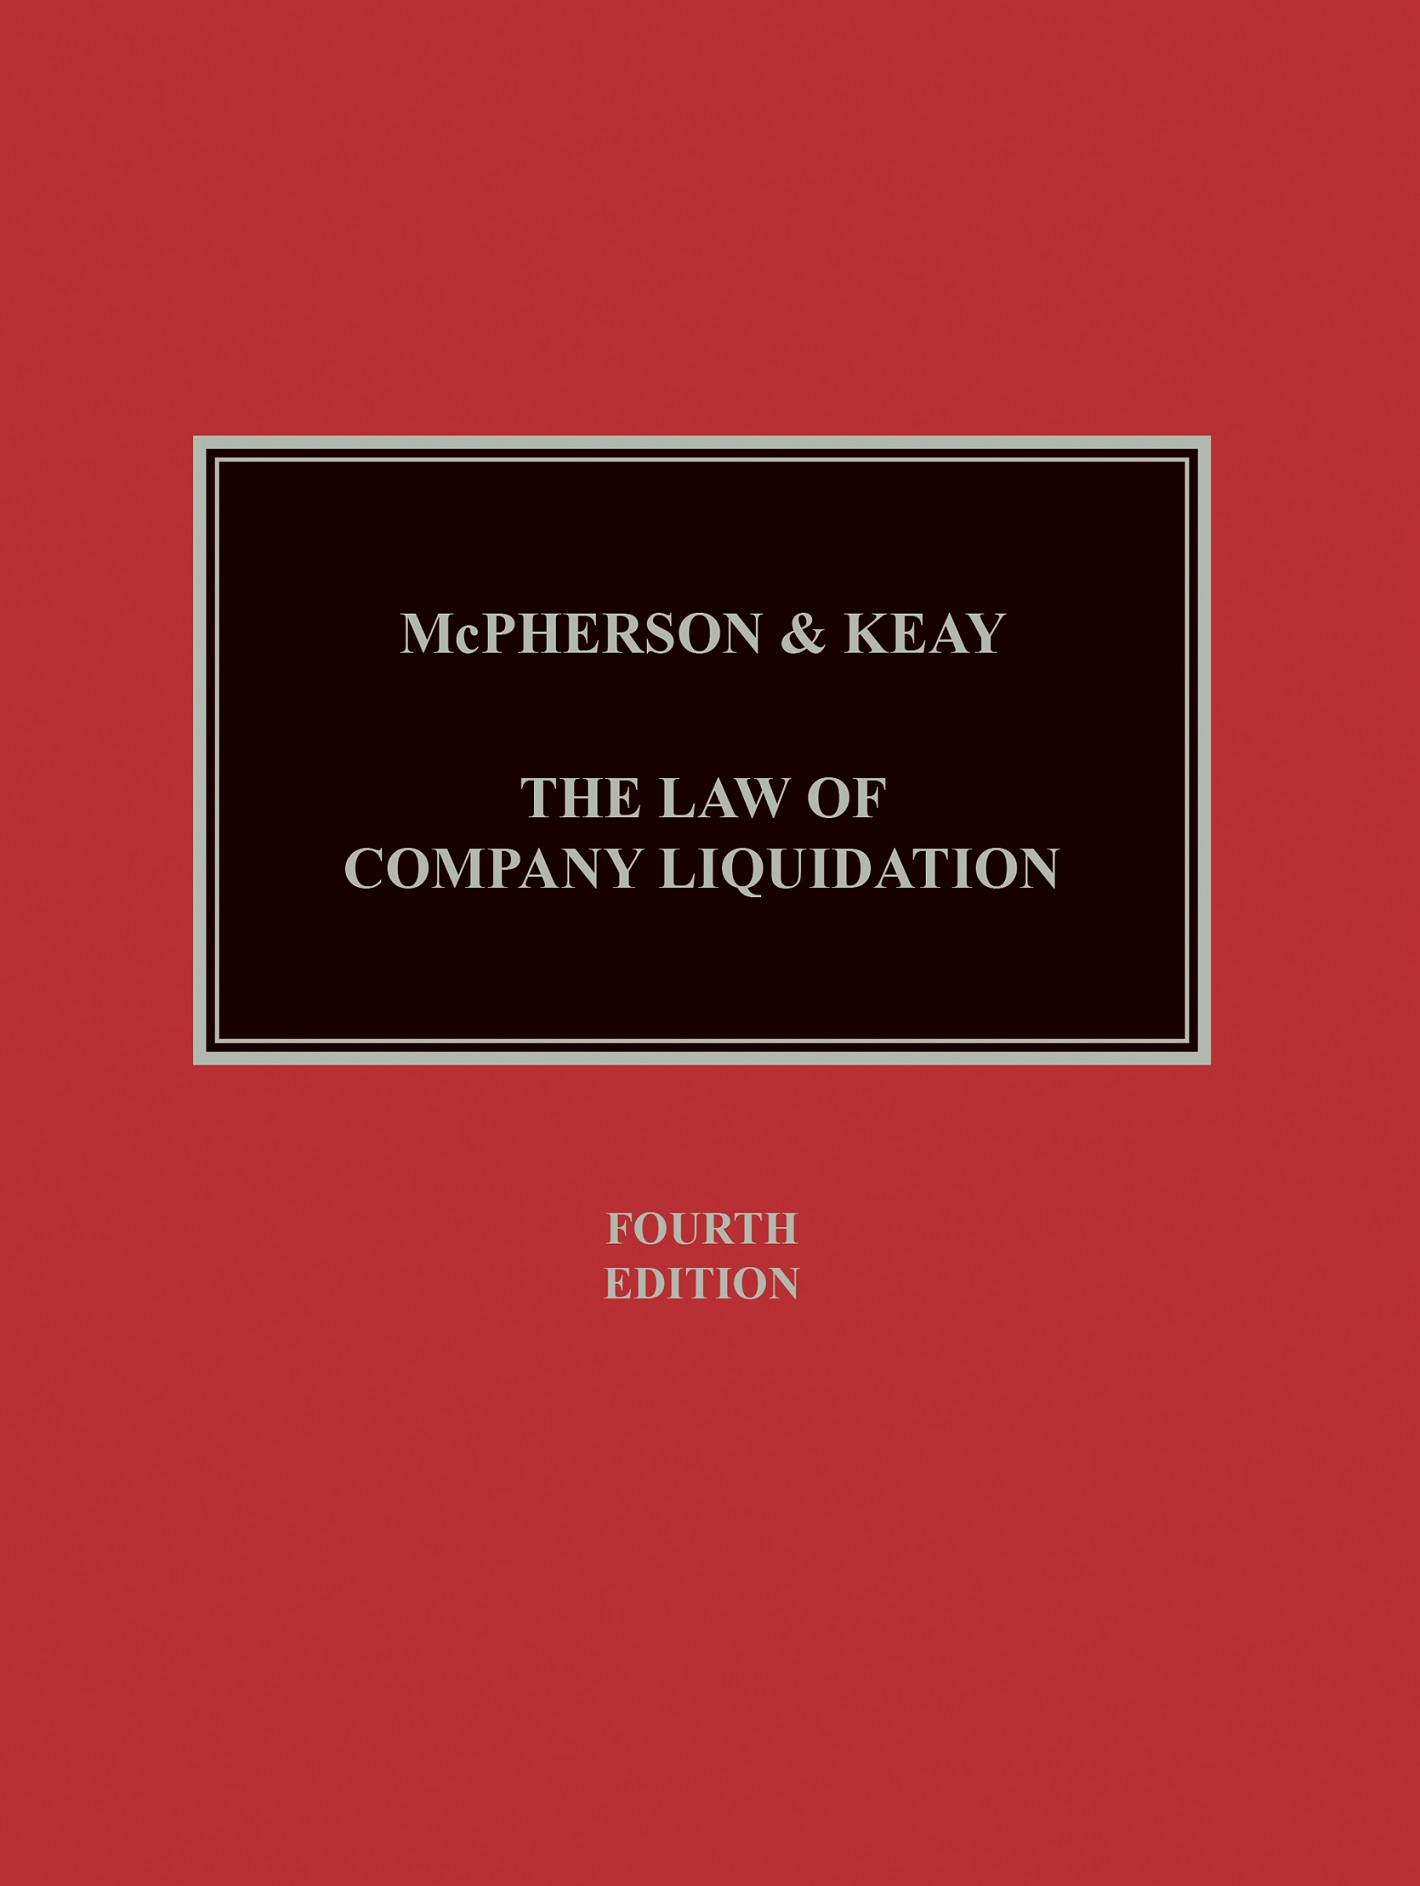 McPherson & Keay's Law of Company Liquidation 4th edition